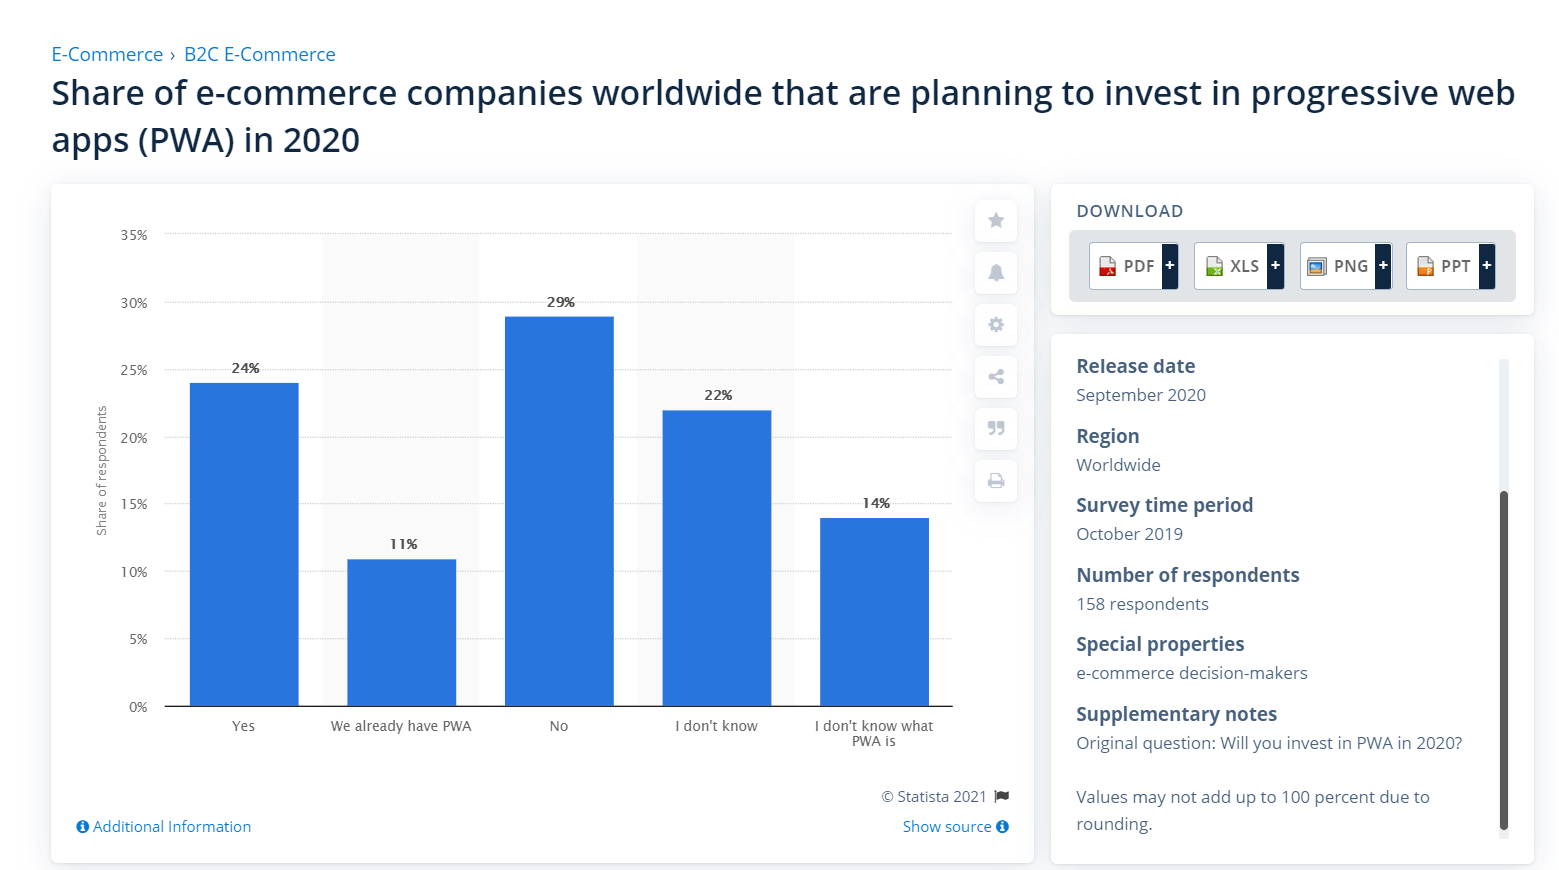 percentage of global eCommerce companies that were planning to develop PWAs in 2020